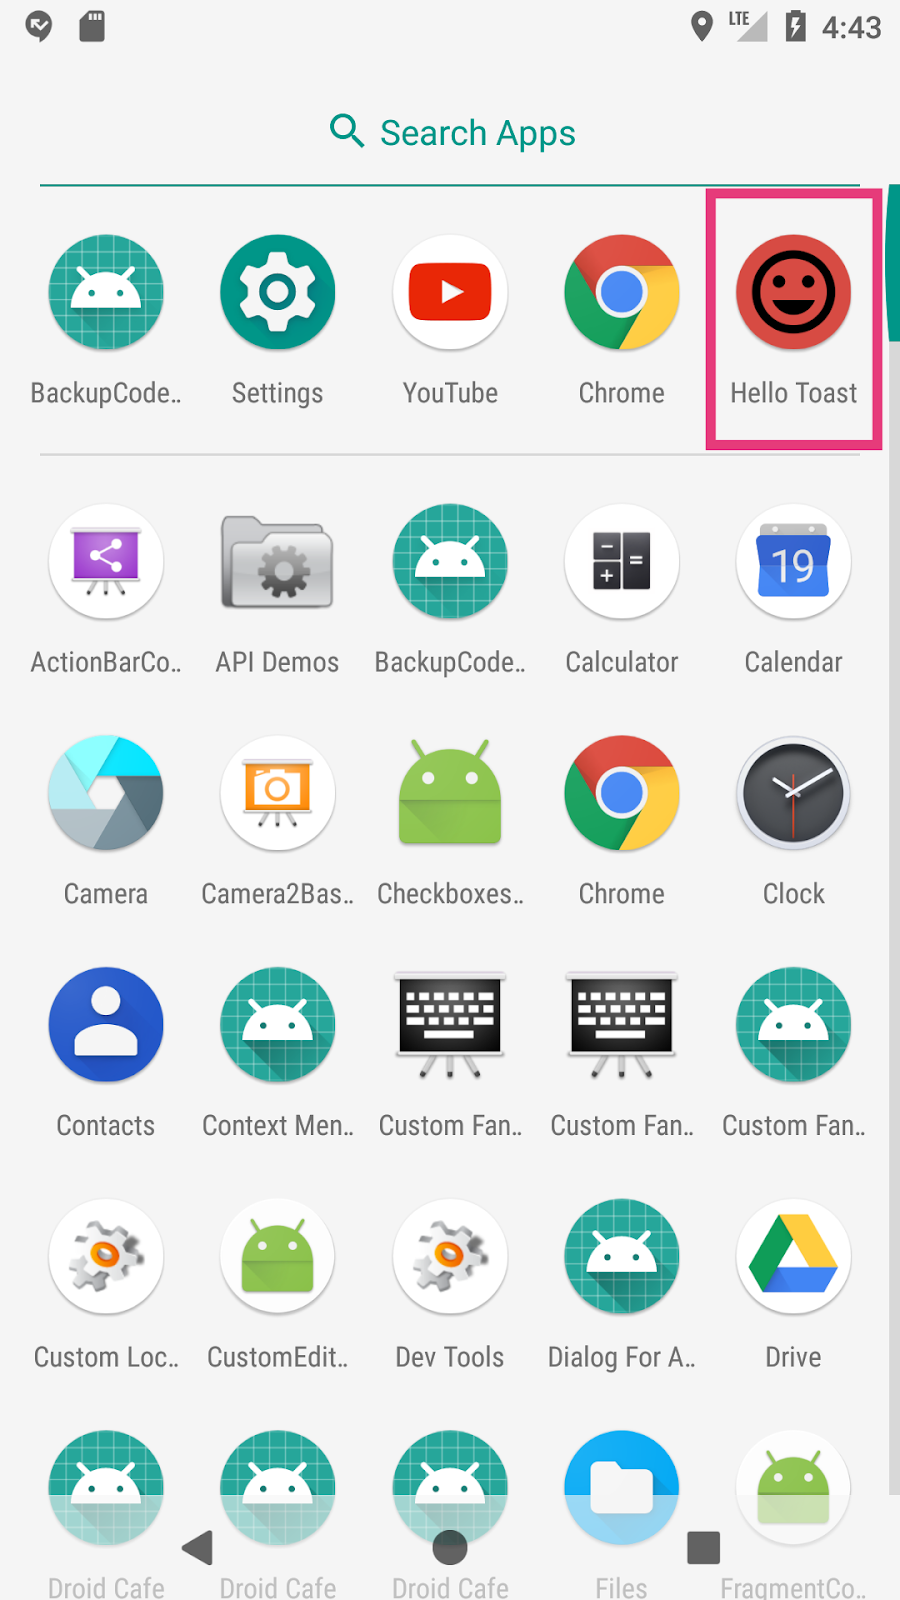 The app uses the new launcher icon.